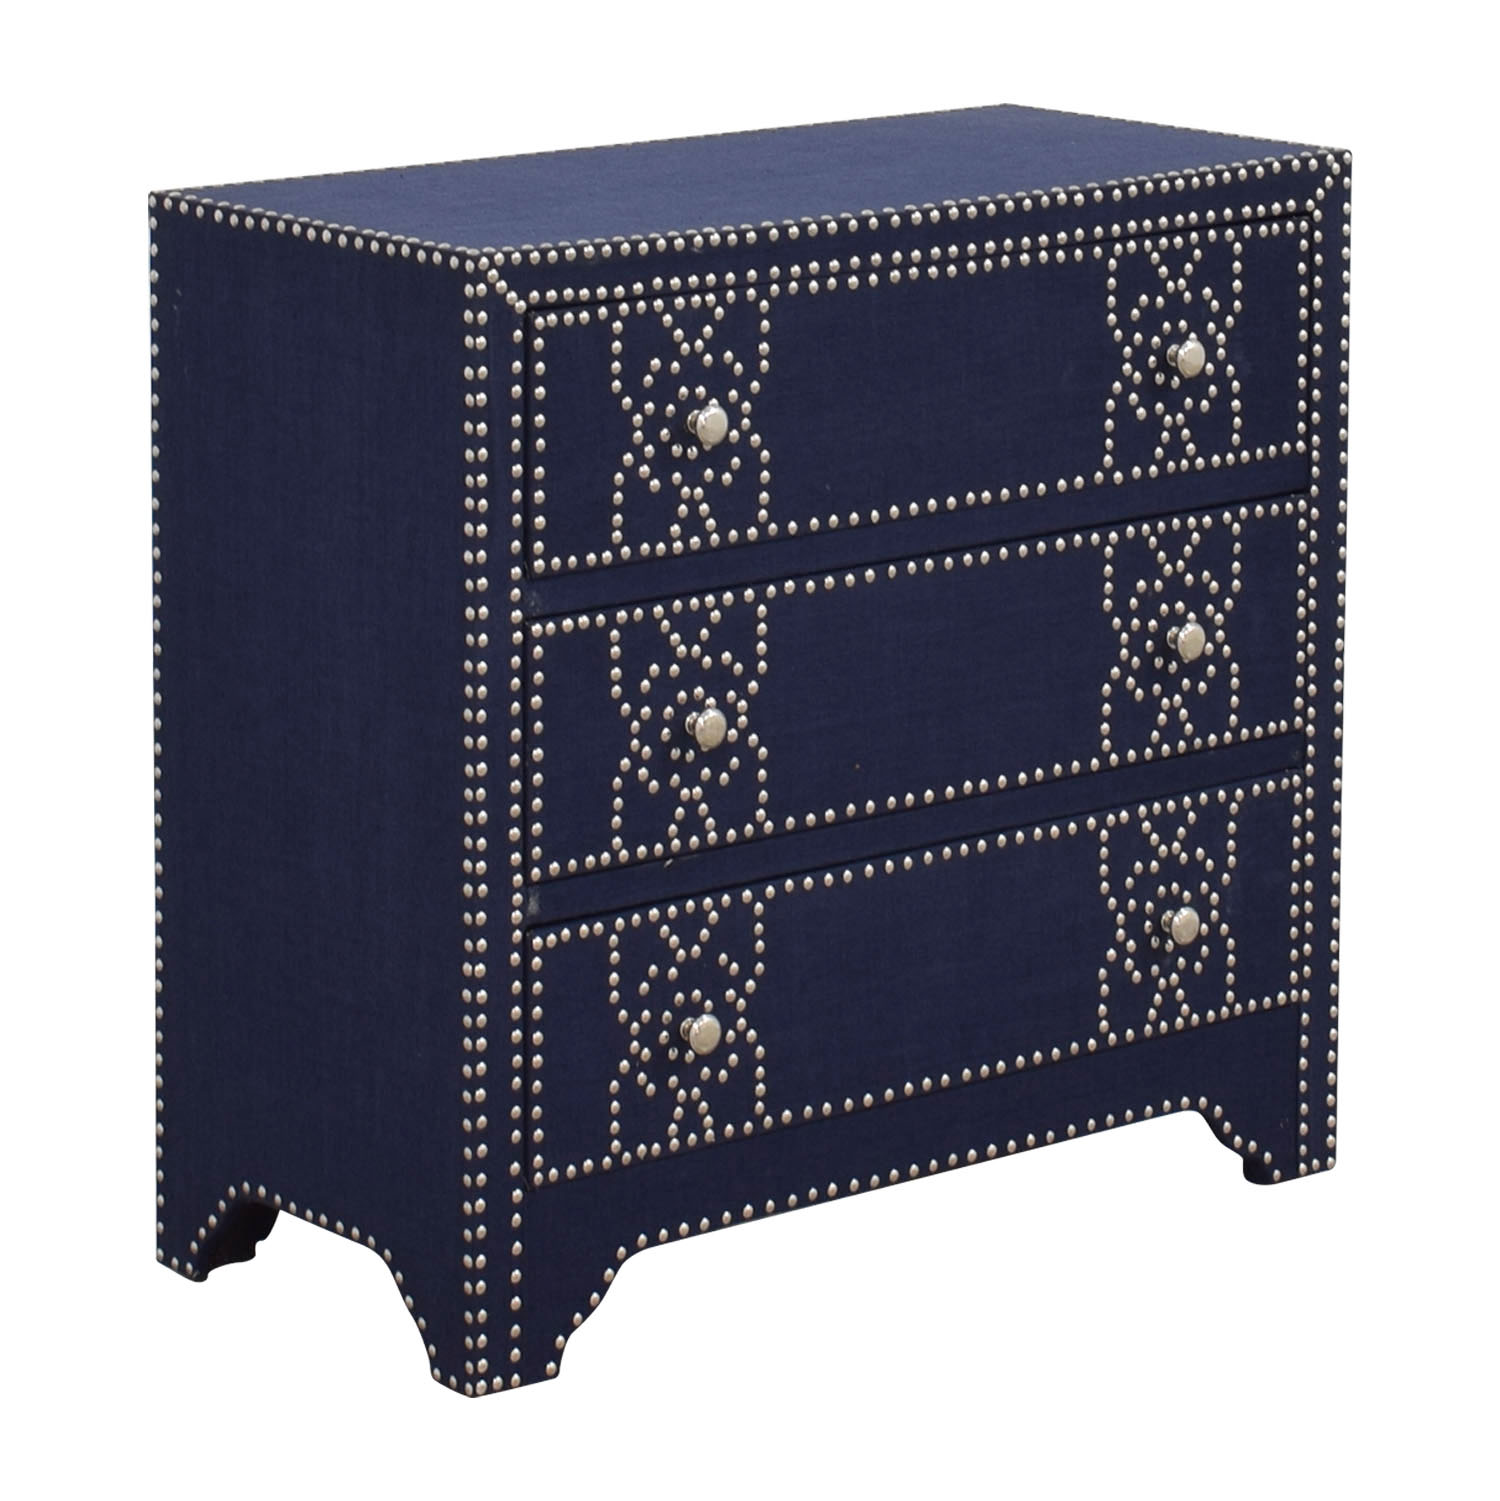 Pier 1 Imports Pier 1 Imports Denim Fabric Lexford Chest with Nailheads dimensions